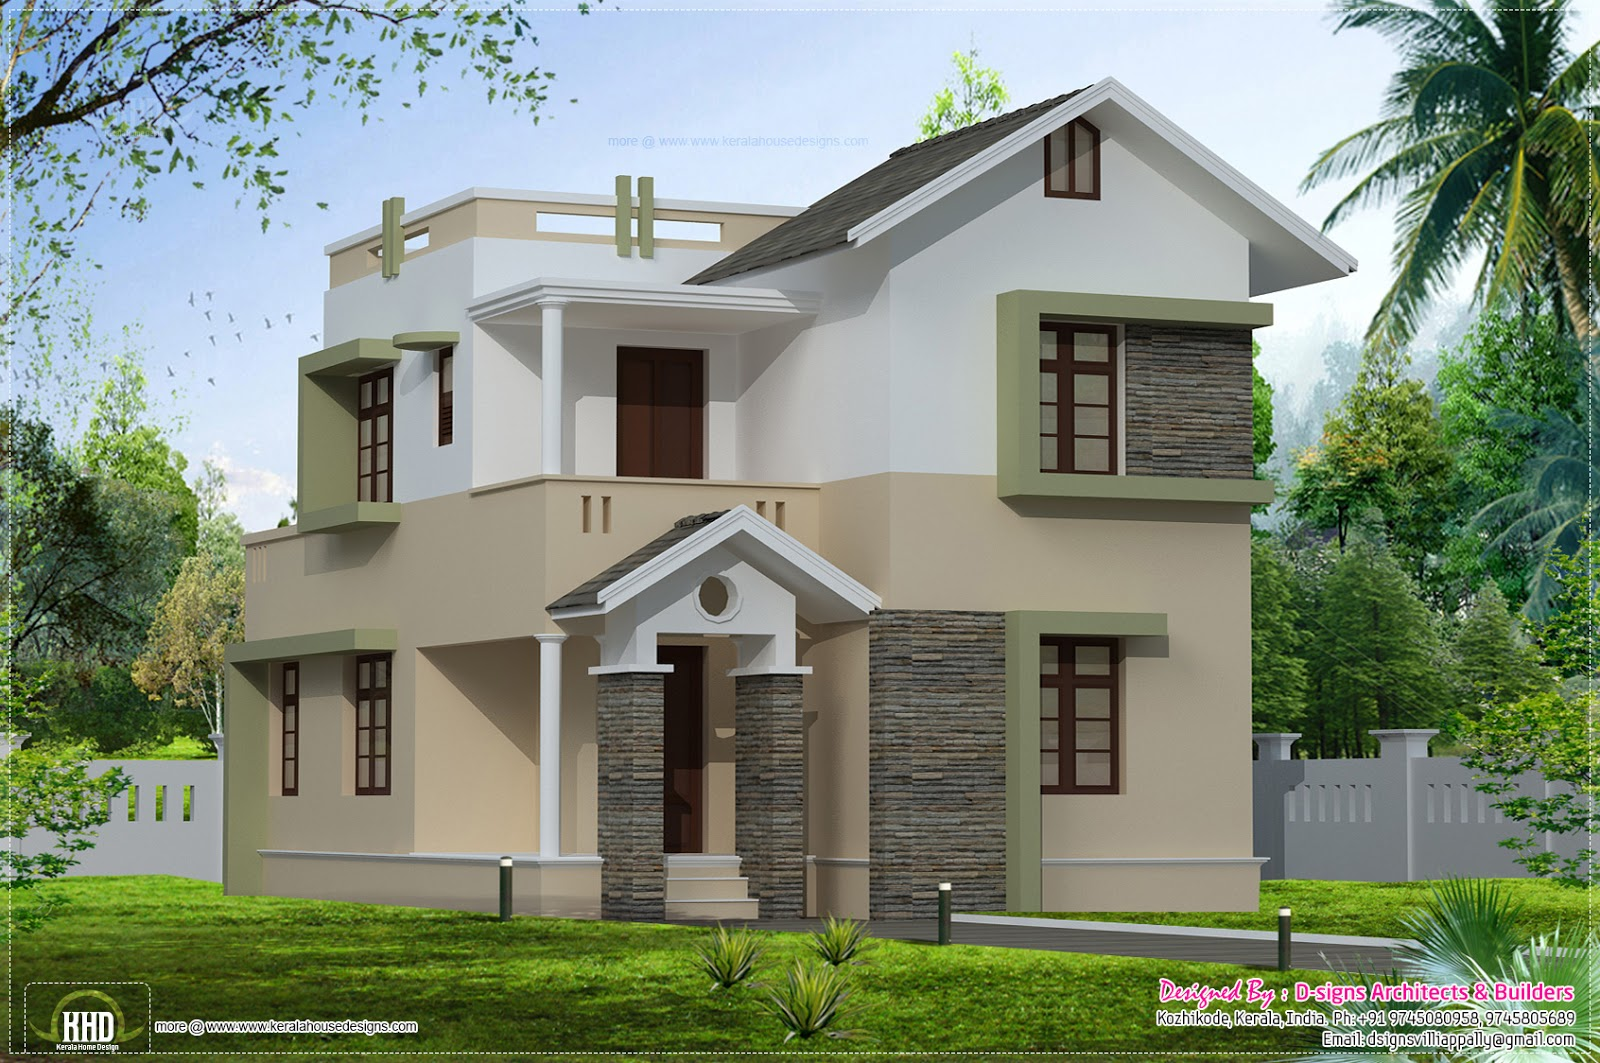 Small House Elevation Kerala Style : Front elevation of small houses home design and decor